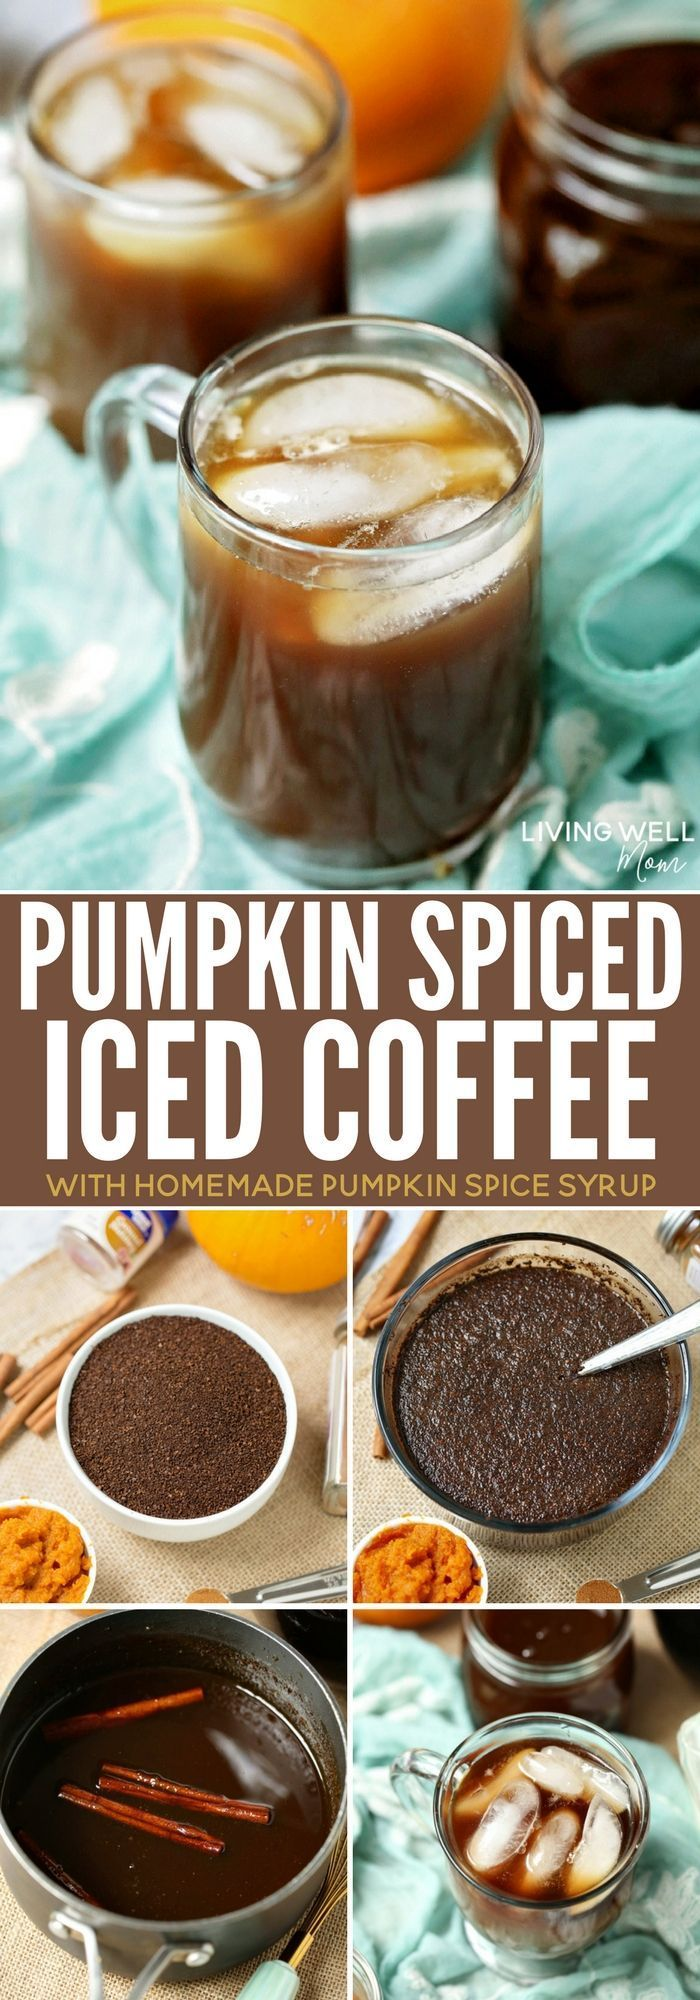 Pumpkin Spice Iced Coffee Recipe Homemade pumpkin